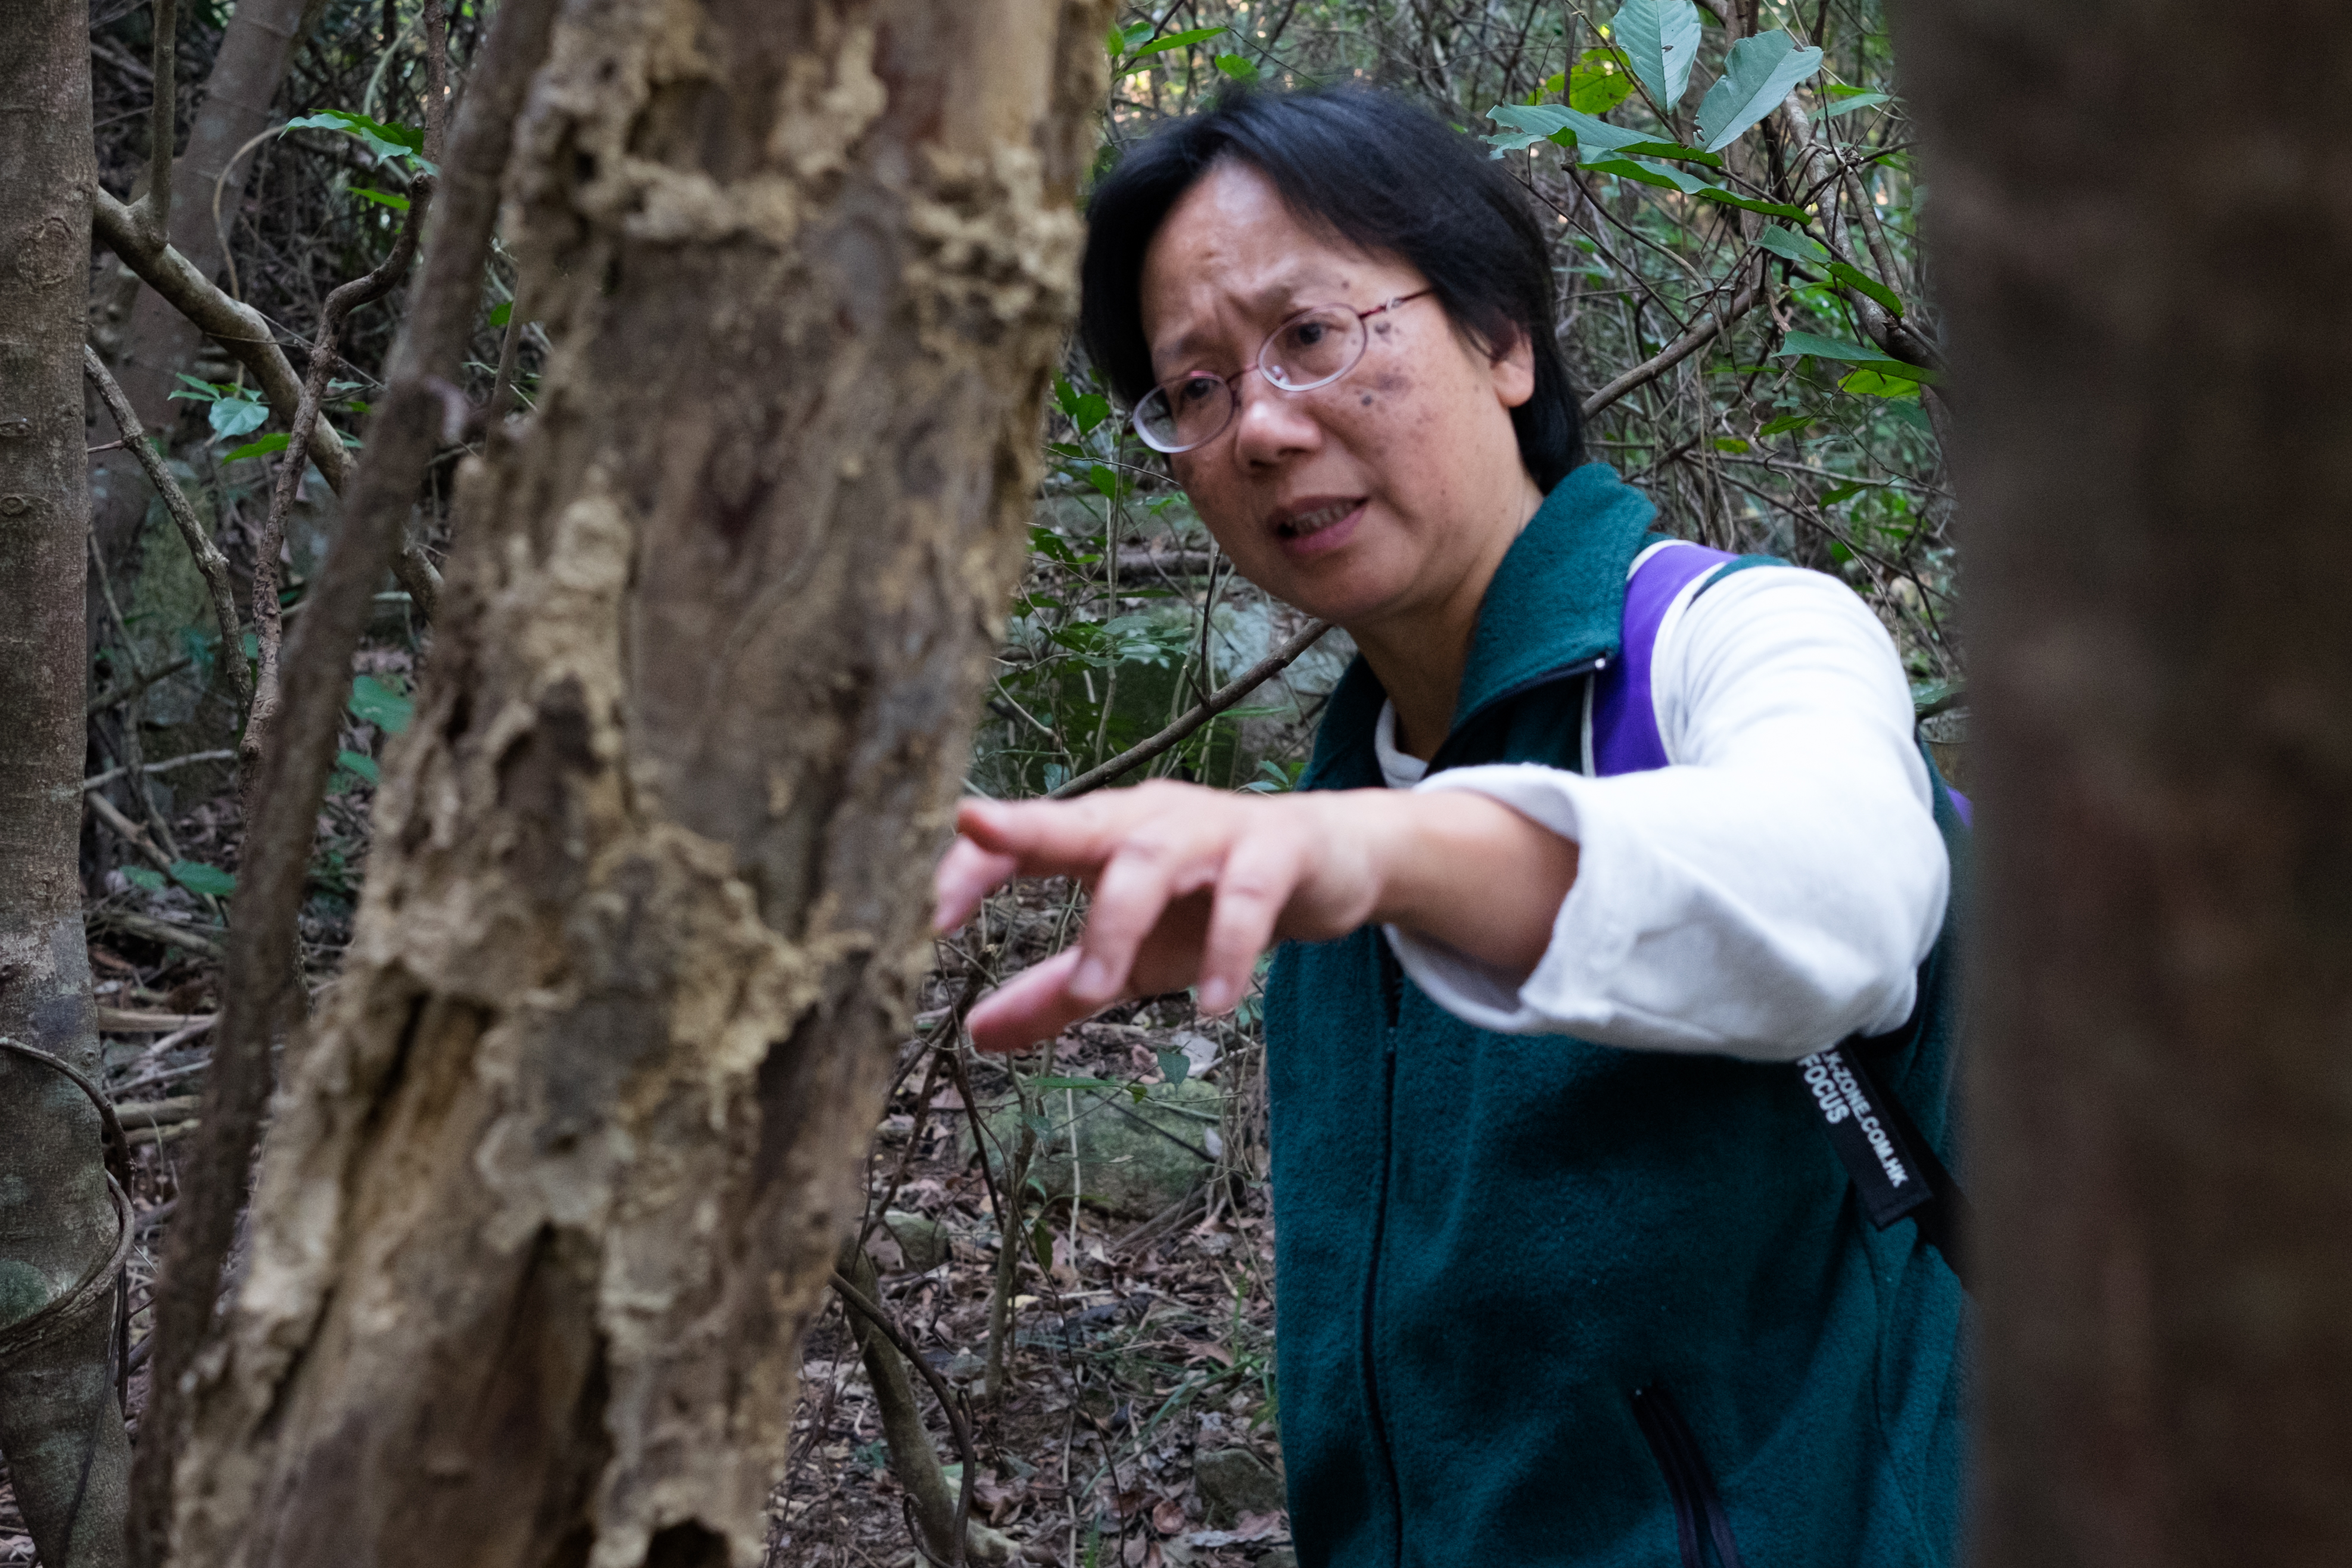 Ho Pui-han inspects an incense tree in Hong Kong's New Territories on March 27, 2016